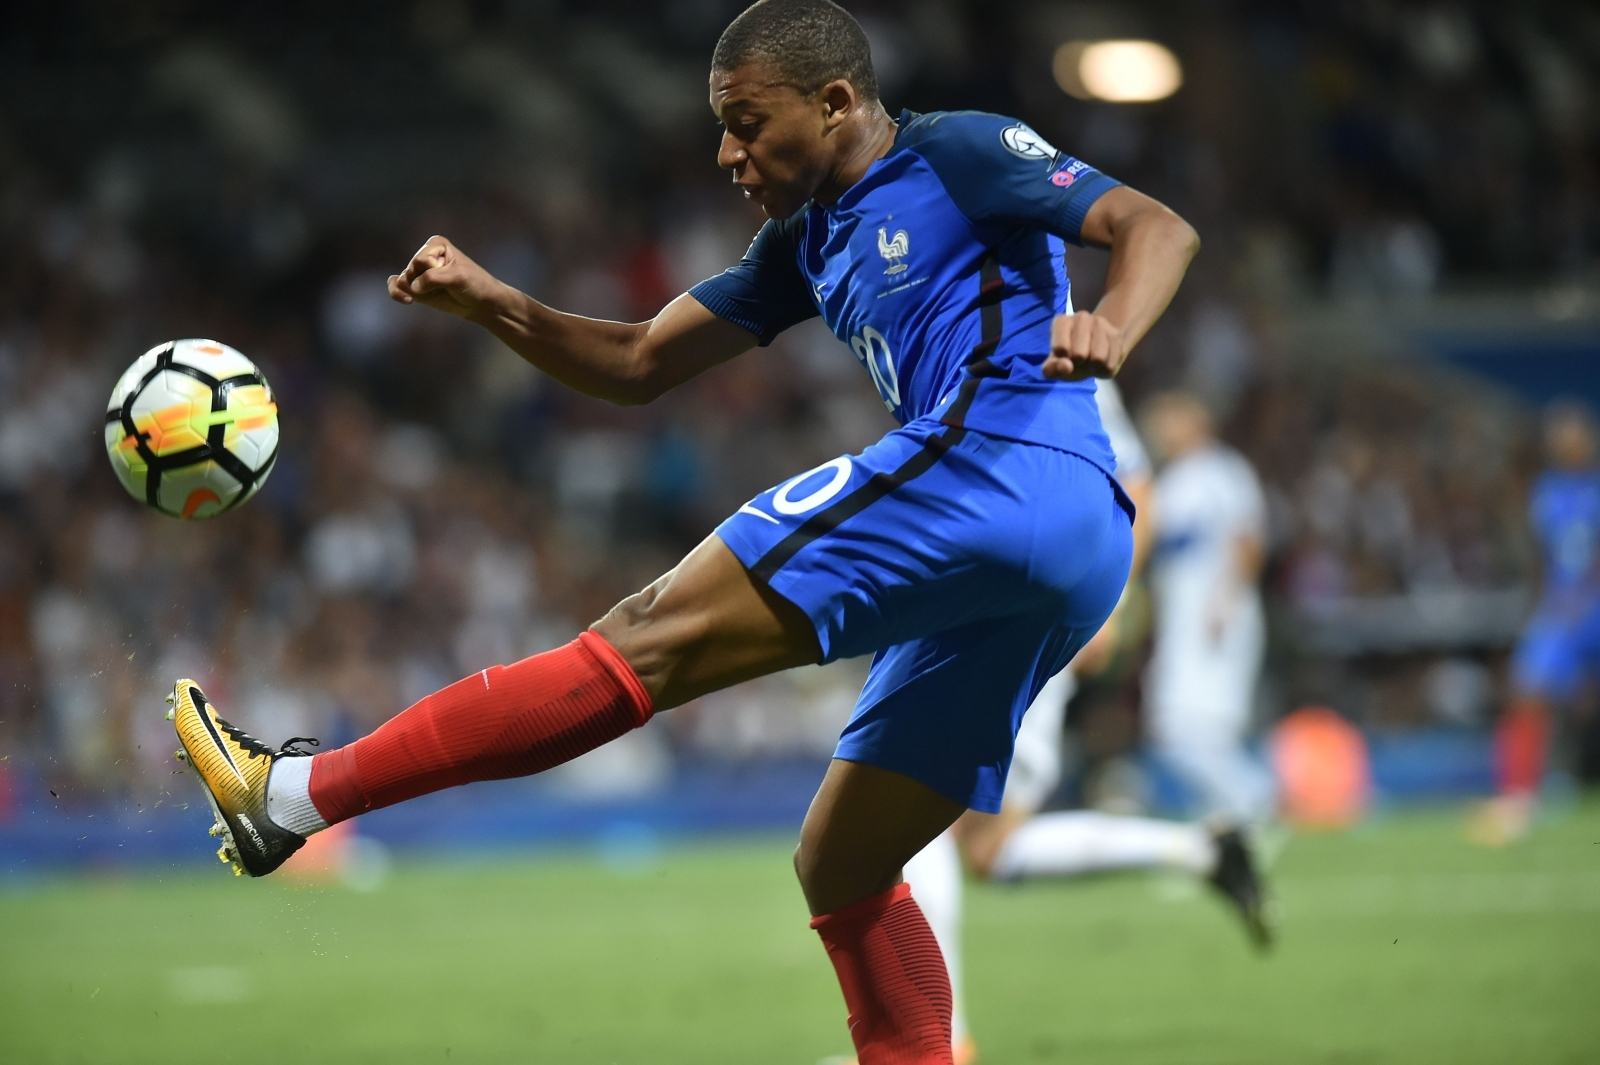 'Next Pele' Kylian Mbappe 'too Much' For Arsenal Admits